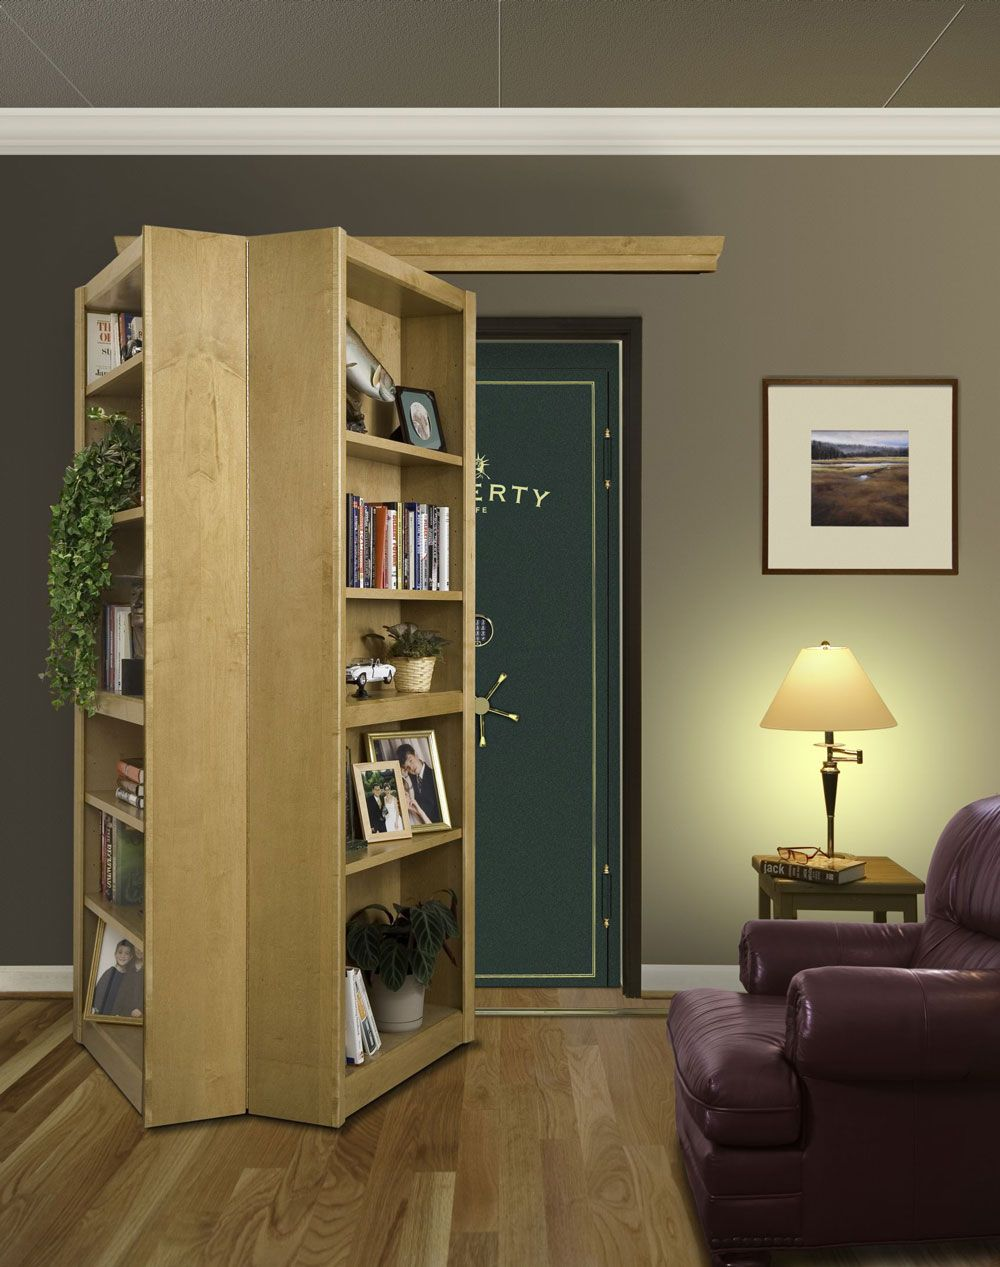 Bookcase Room Dividers | Bookcase Doors - by Woodfold & Bookcase Room Dividers | Bookcase Doors - by Woodfold | Survival ...